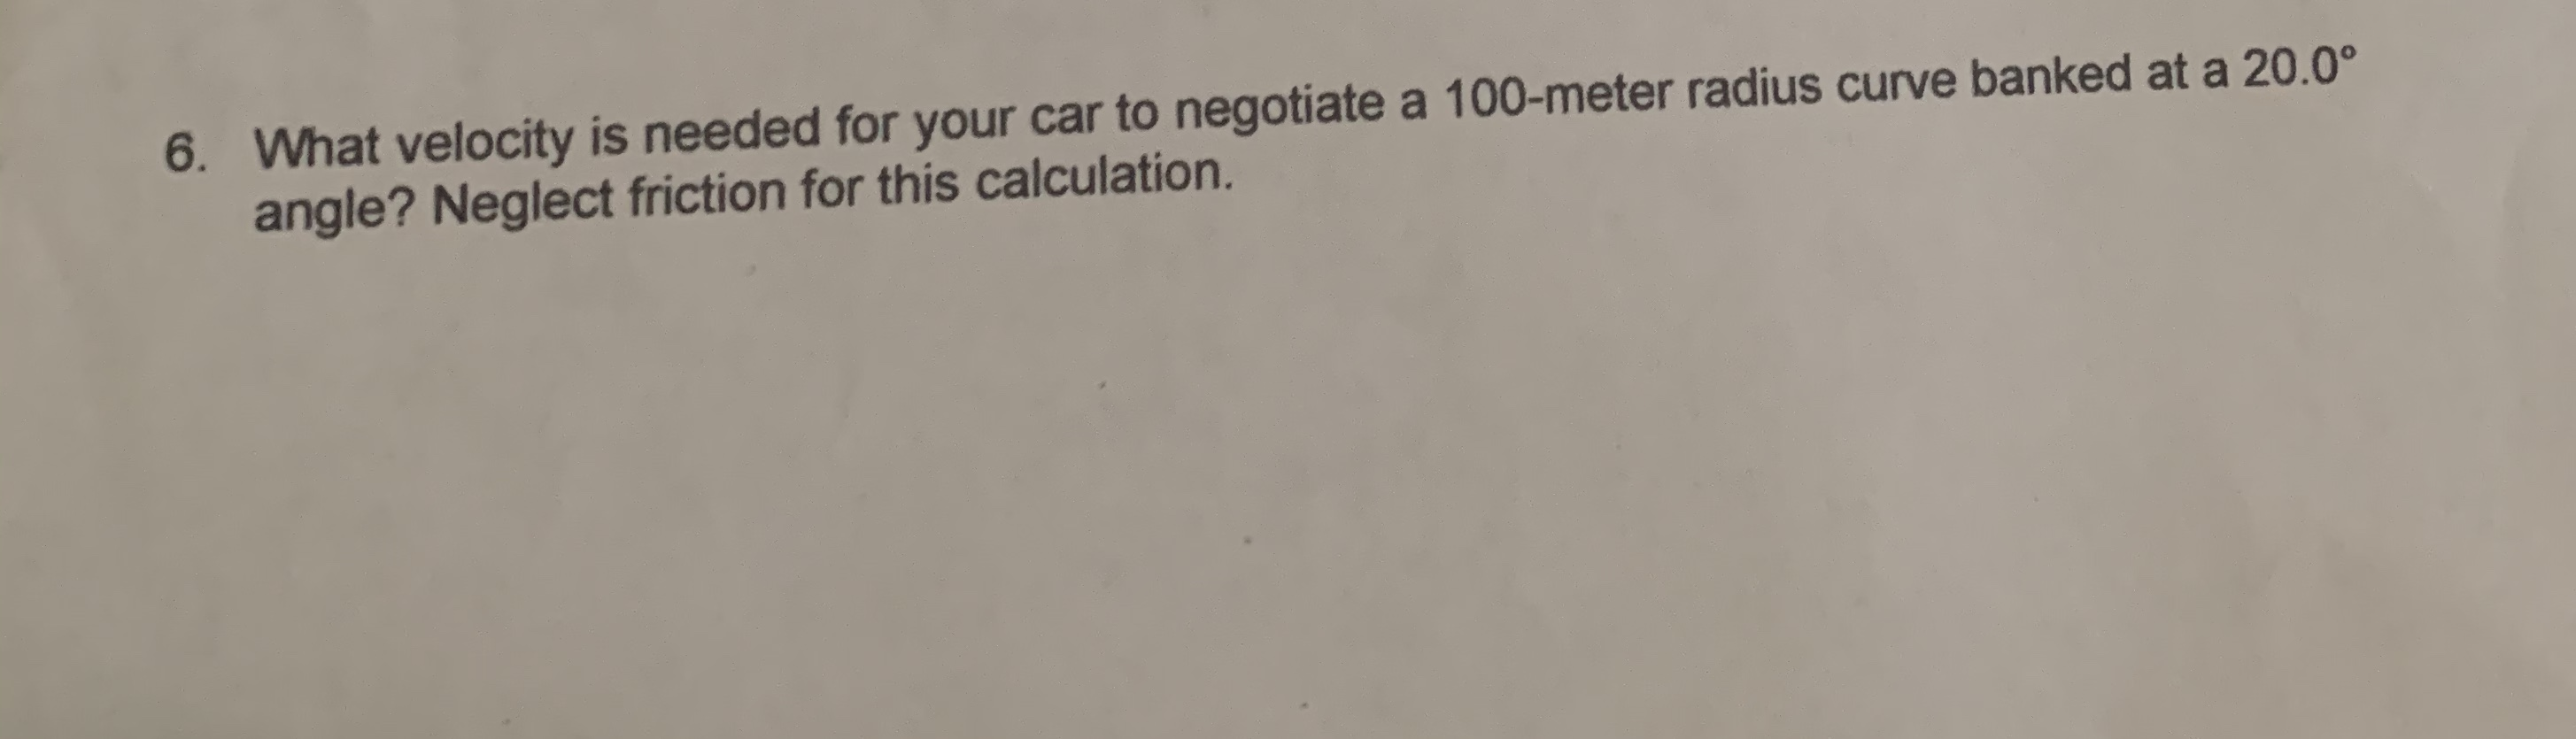 6 What velocity is needed for your car to negotiate a 100-meter radius curve banked at a 20.0° angle? Neglect friction for this calculation